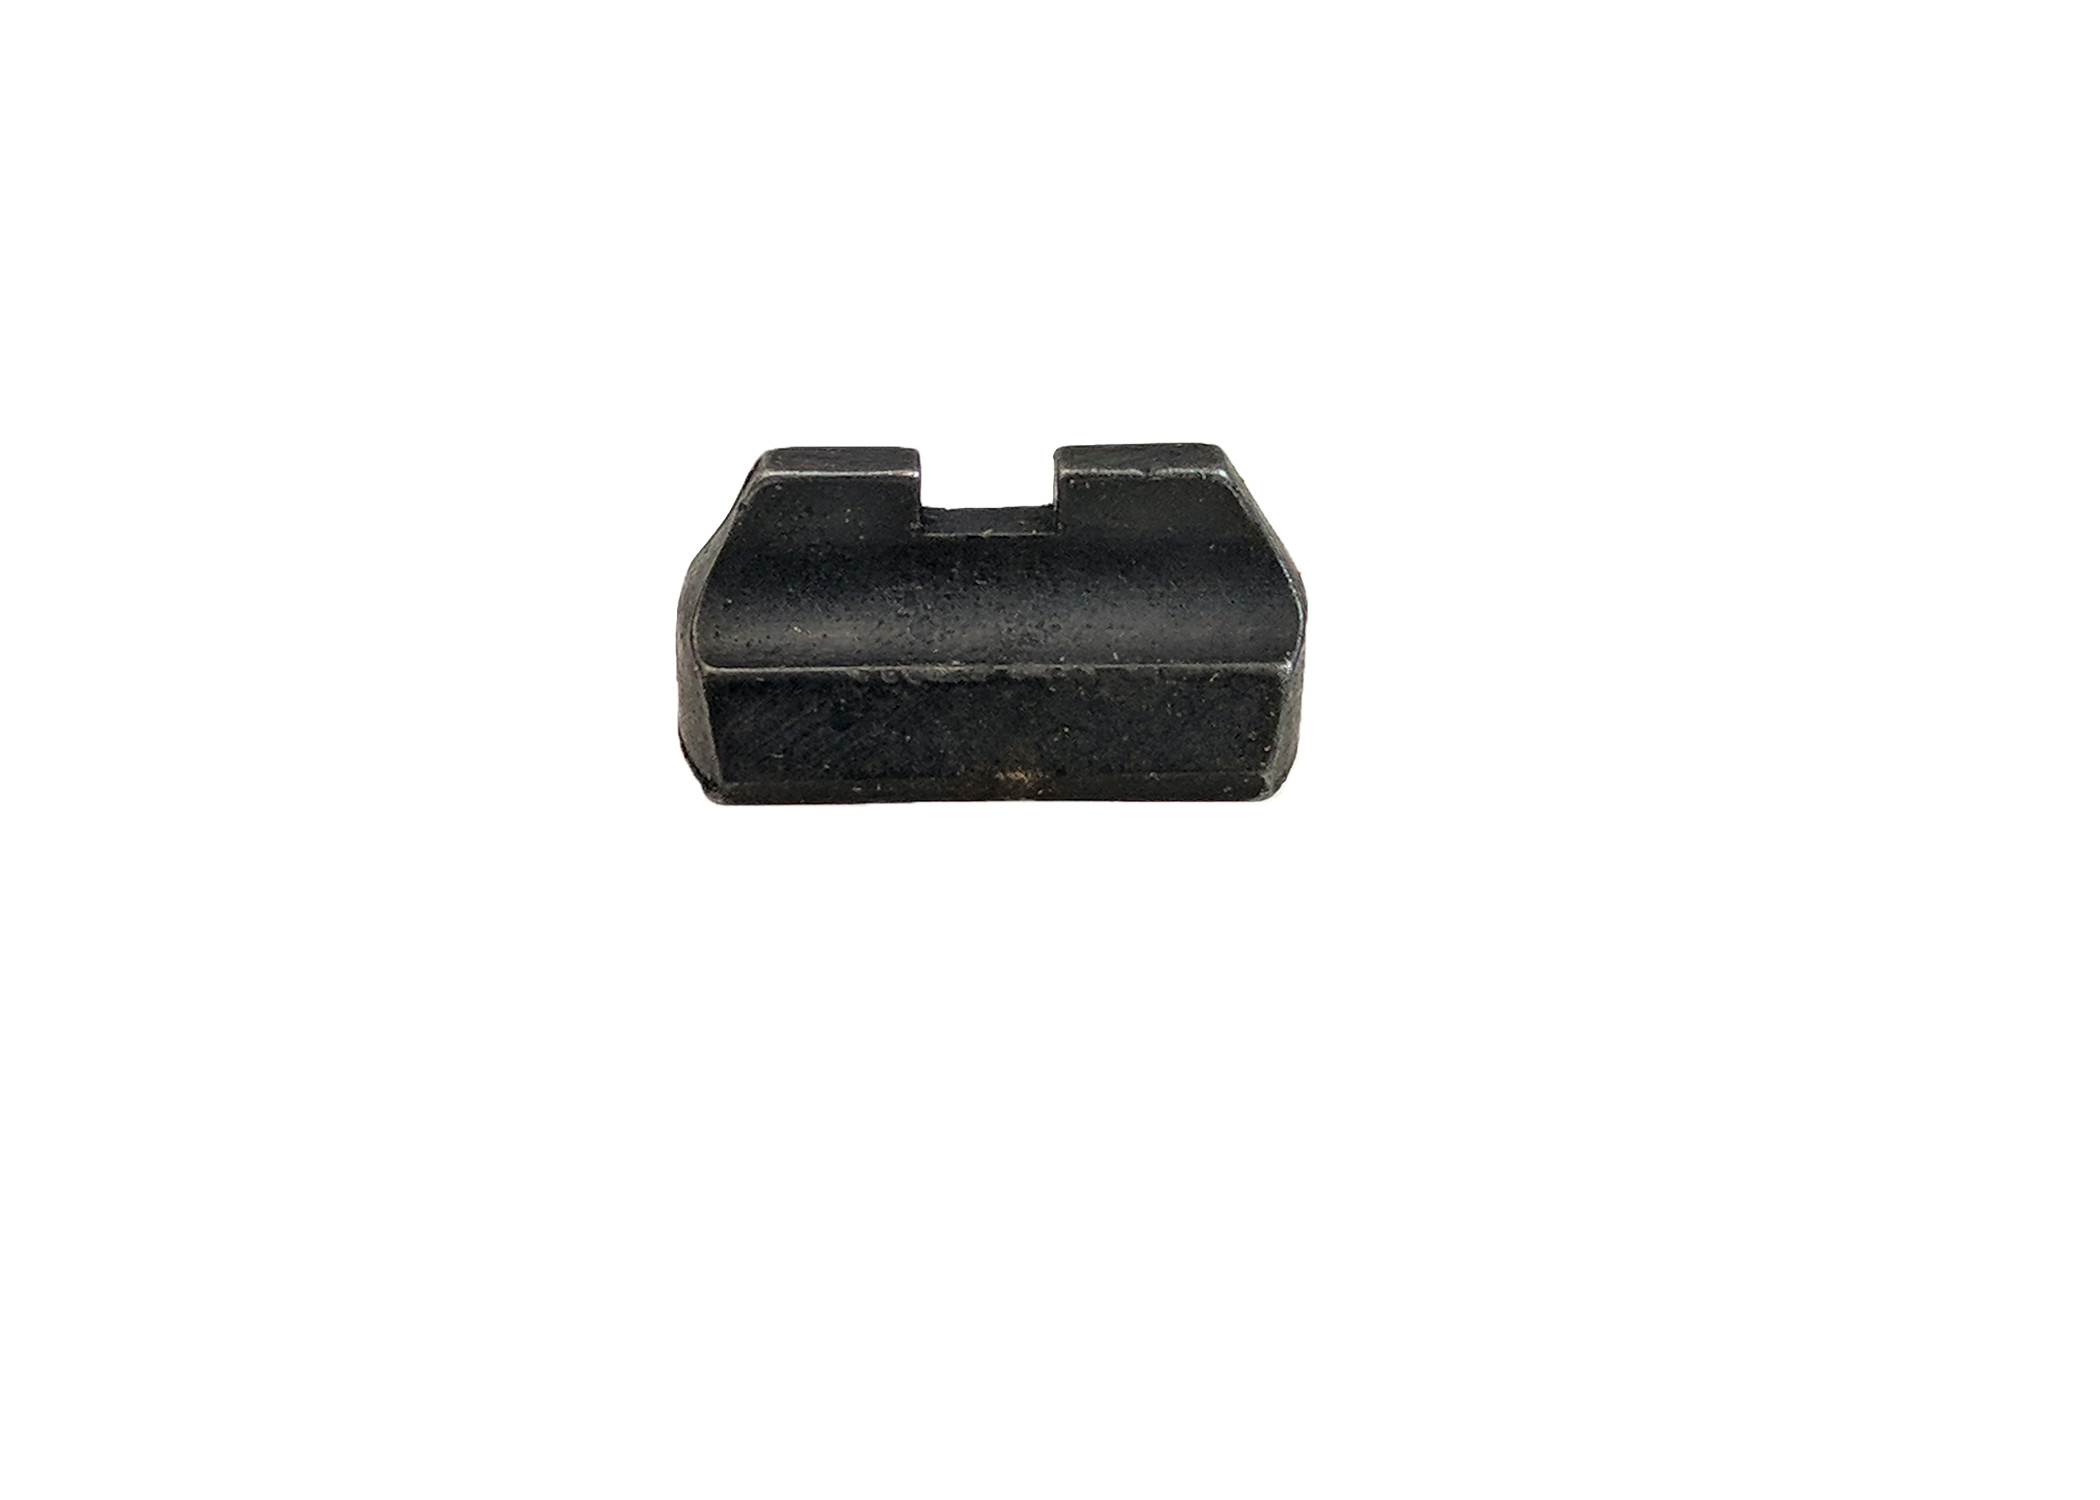 Star BM Rear Sight